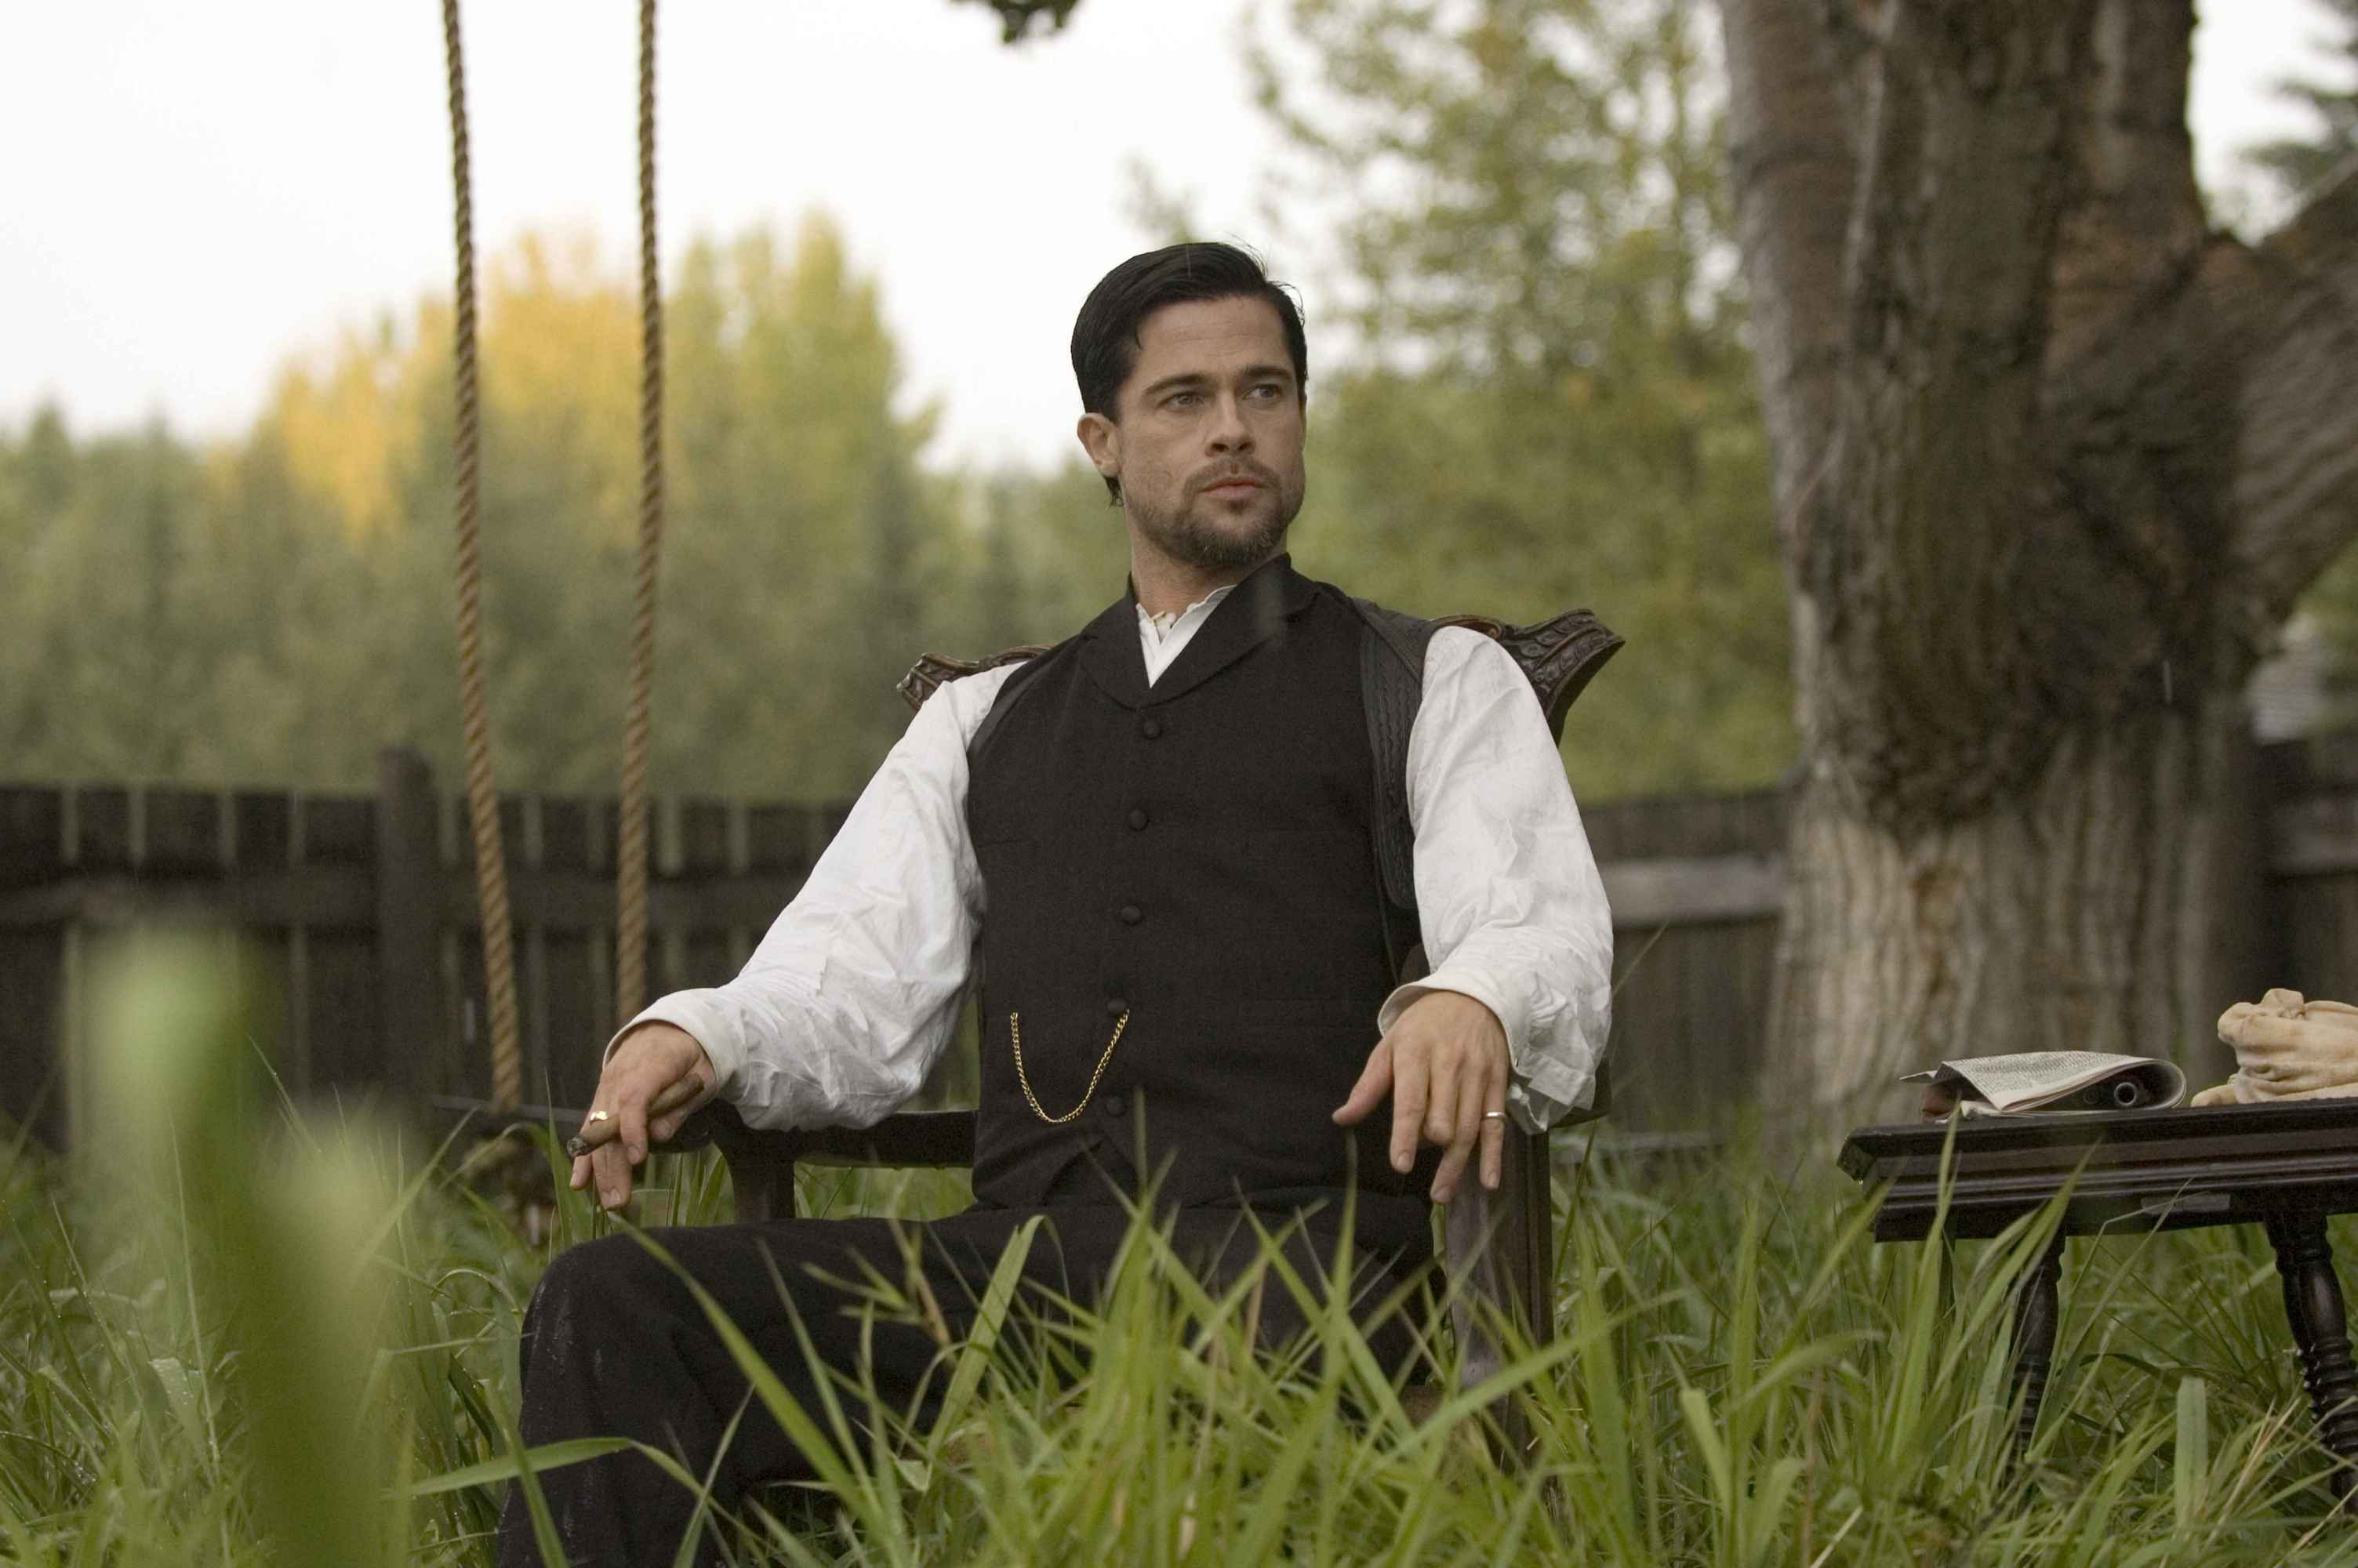 The Assassination Jesse James by the Coward Robert Ford